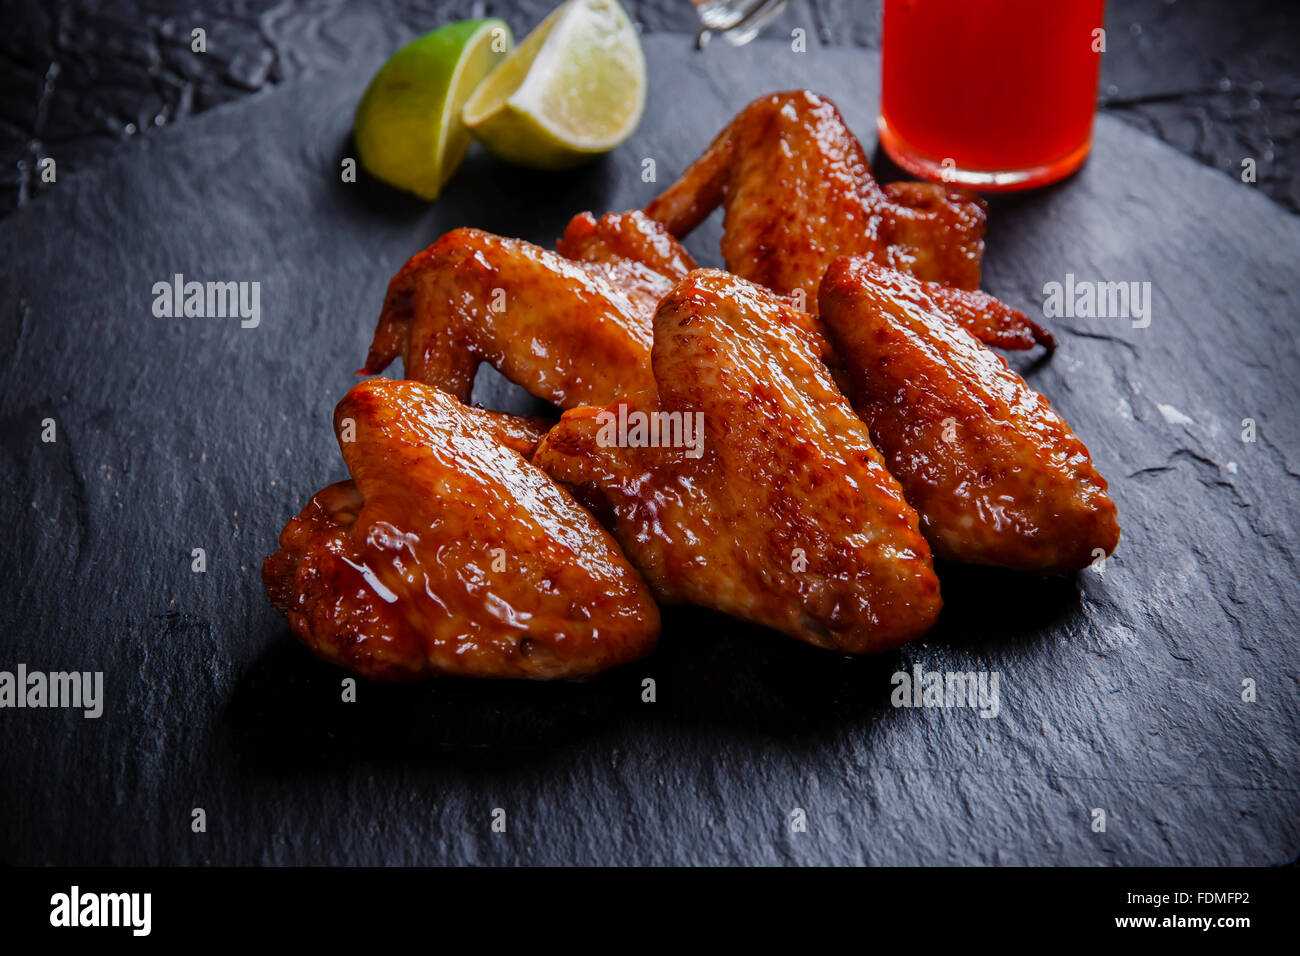 fried chicken wings on a black stone - Stock Image